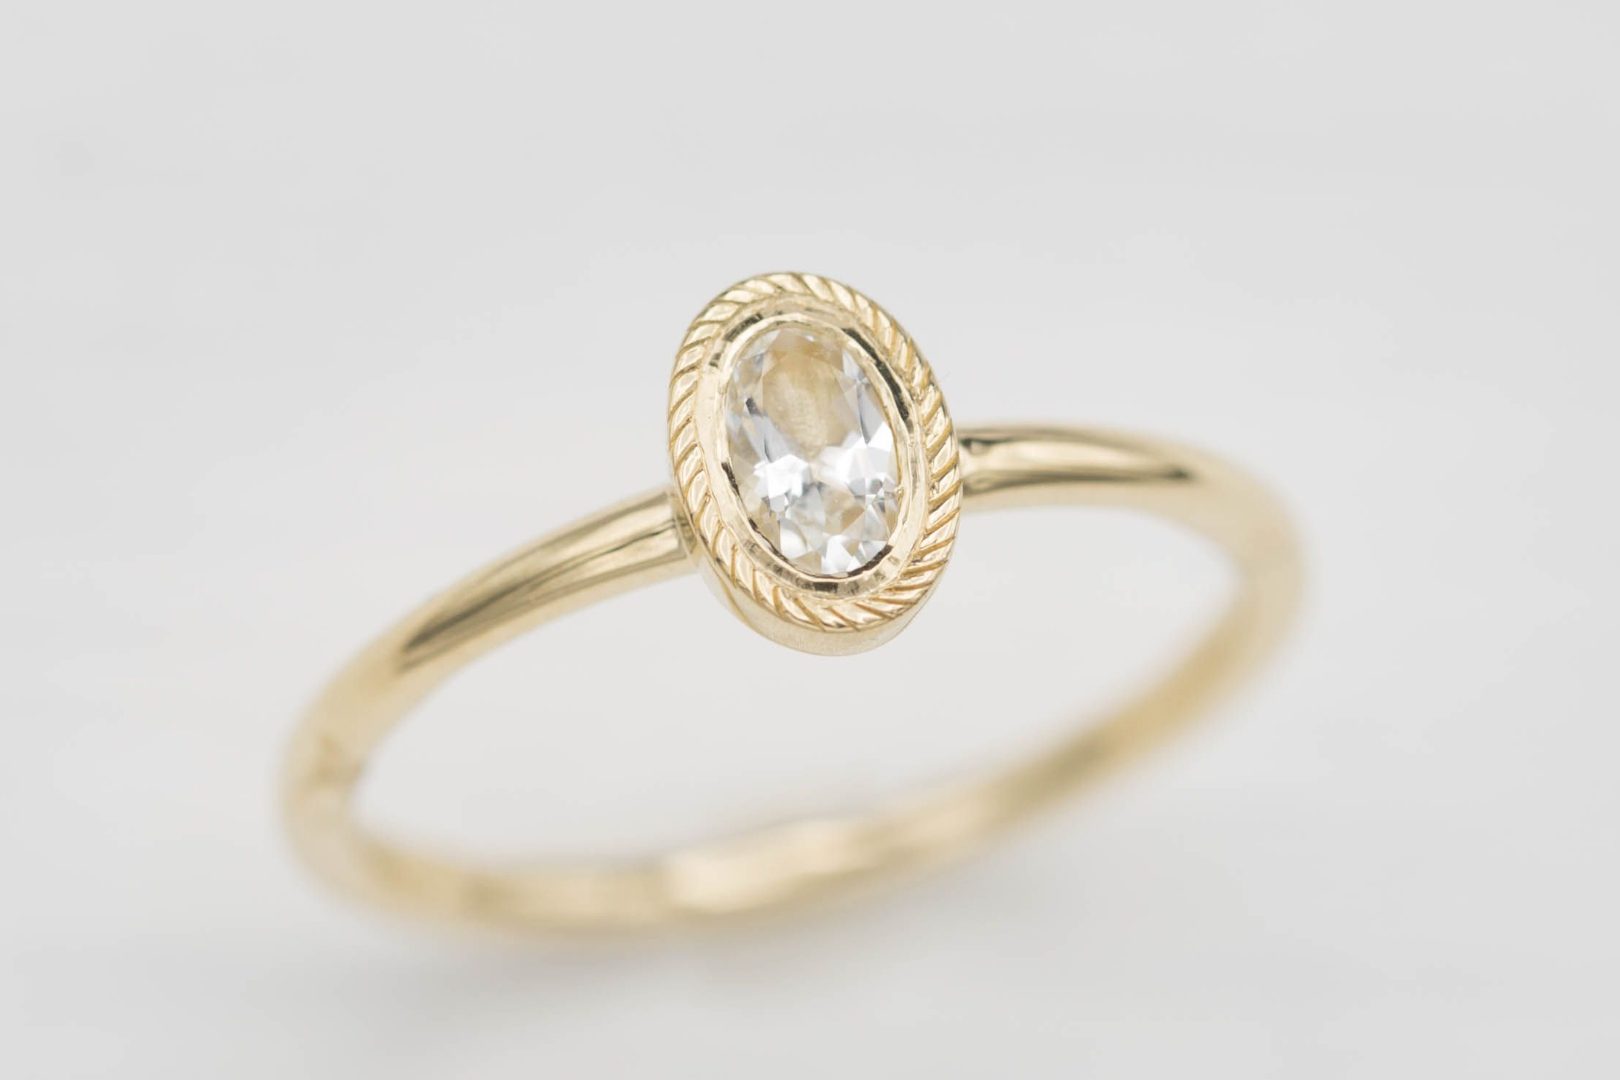 Oval white topaz in a delicate yellow gold bezel setting